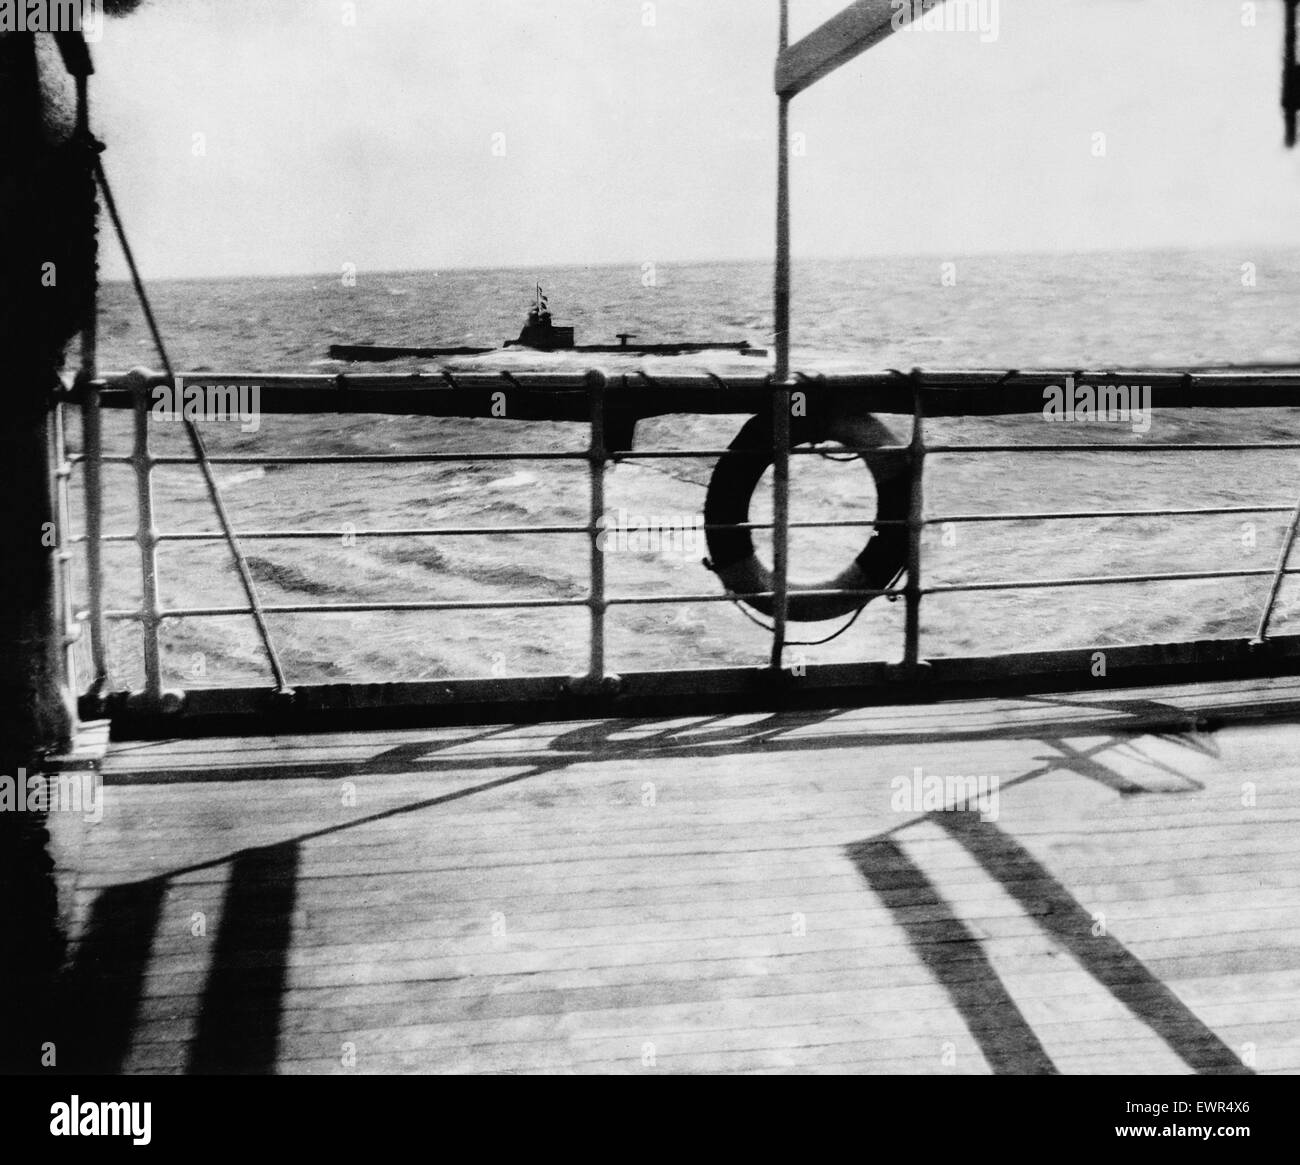 Sinking of the ship Falaba. DM 3141c Box 5 March 28th 1915. The sinking of the 'Falaba'. Lurking menacingly - Stock Image